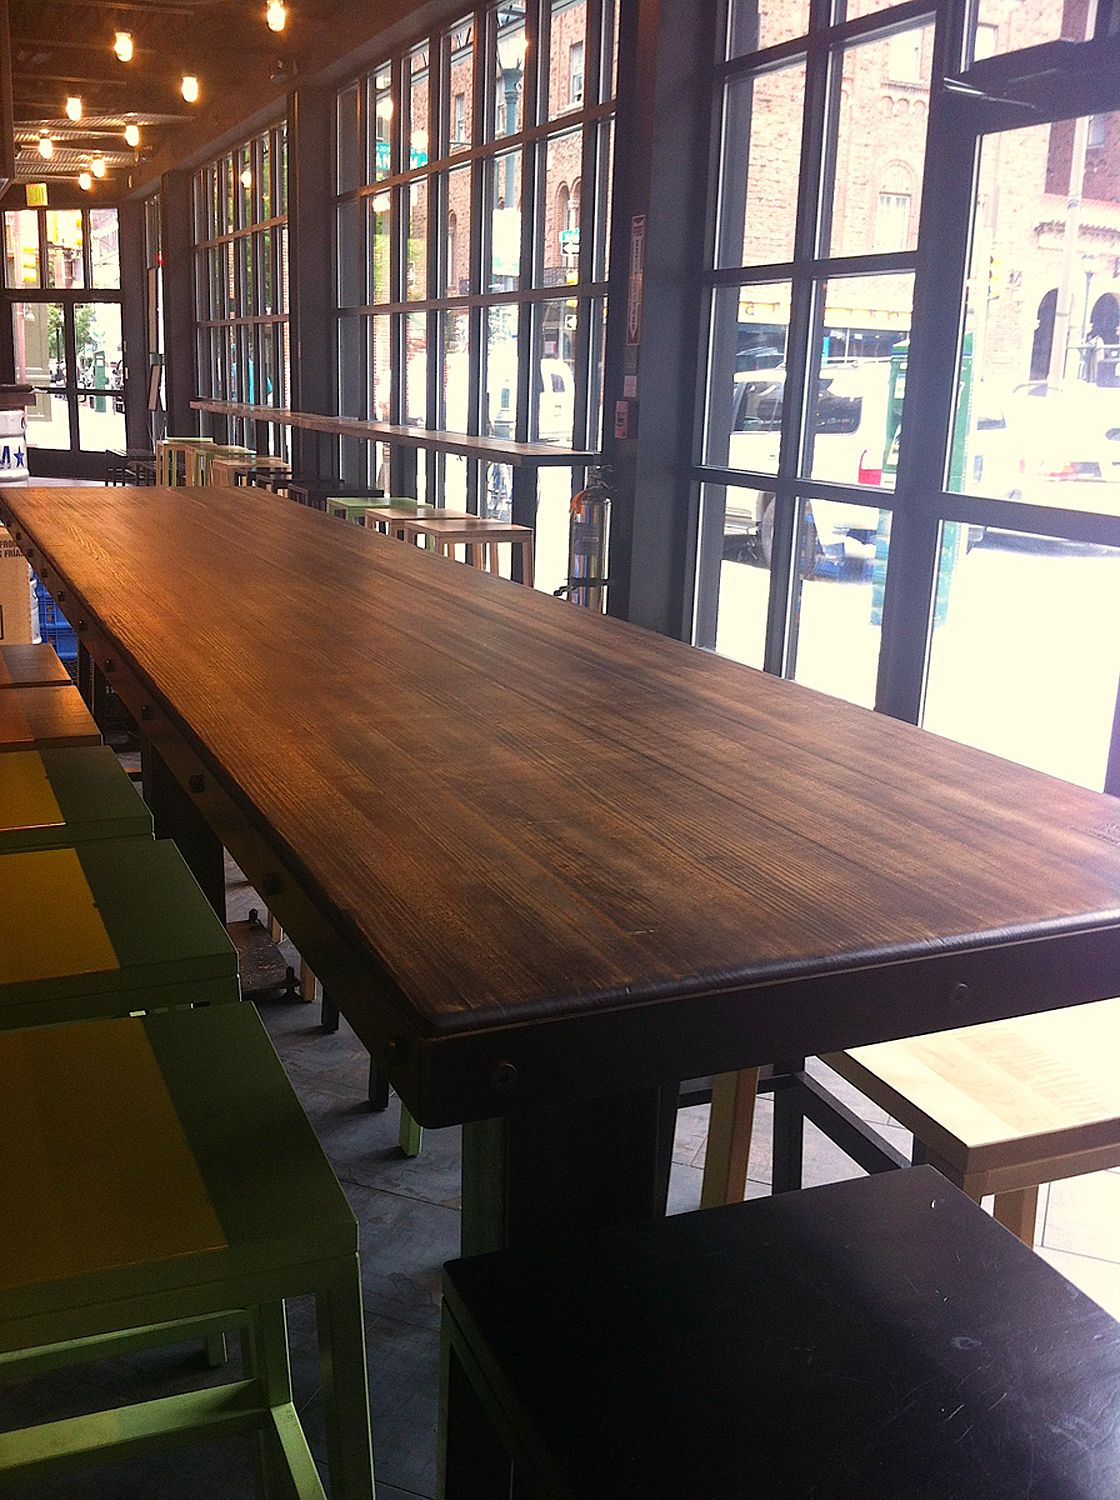 Counterev Reclaimed Wood Table As Seen In The New Philadelphia Shake Shack Made By Hand Brooklyn From Bowling Lanes Madeinusa Ecofriendly